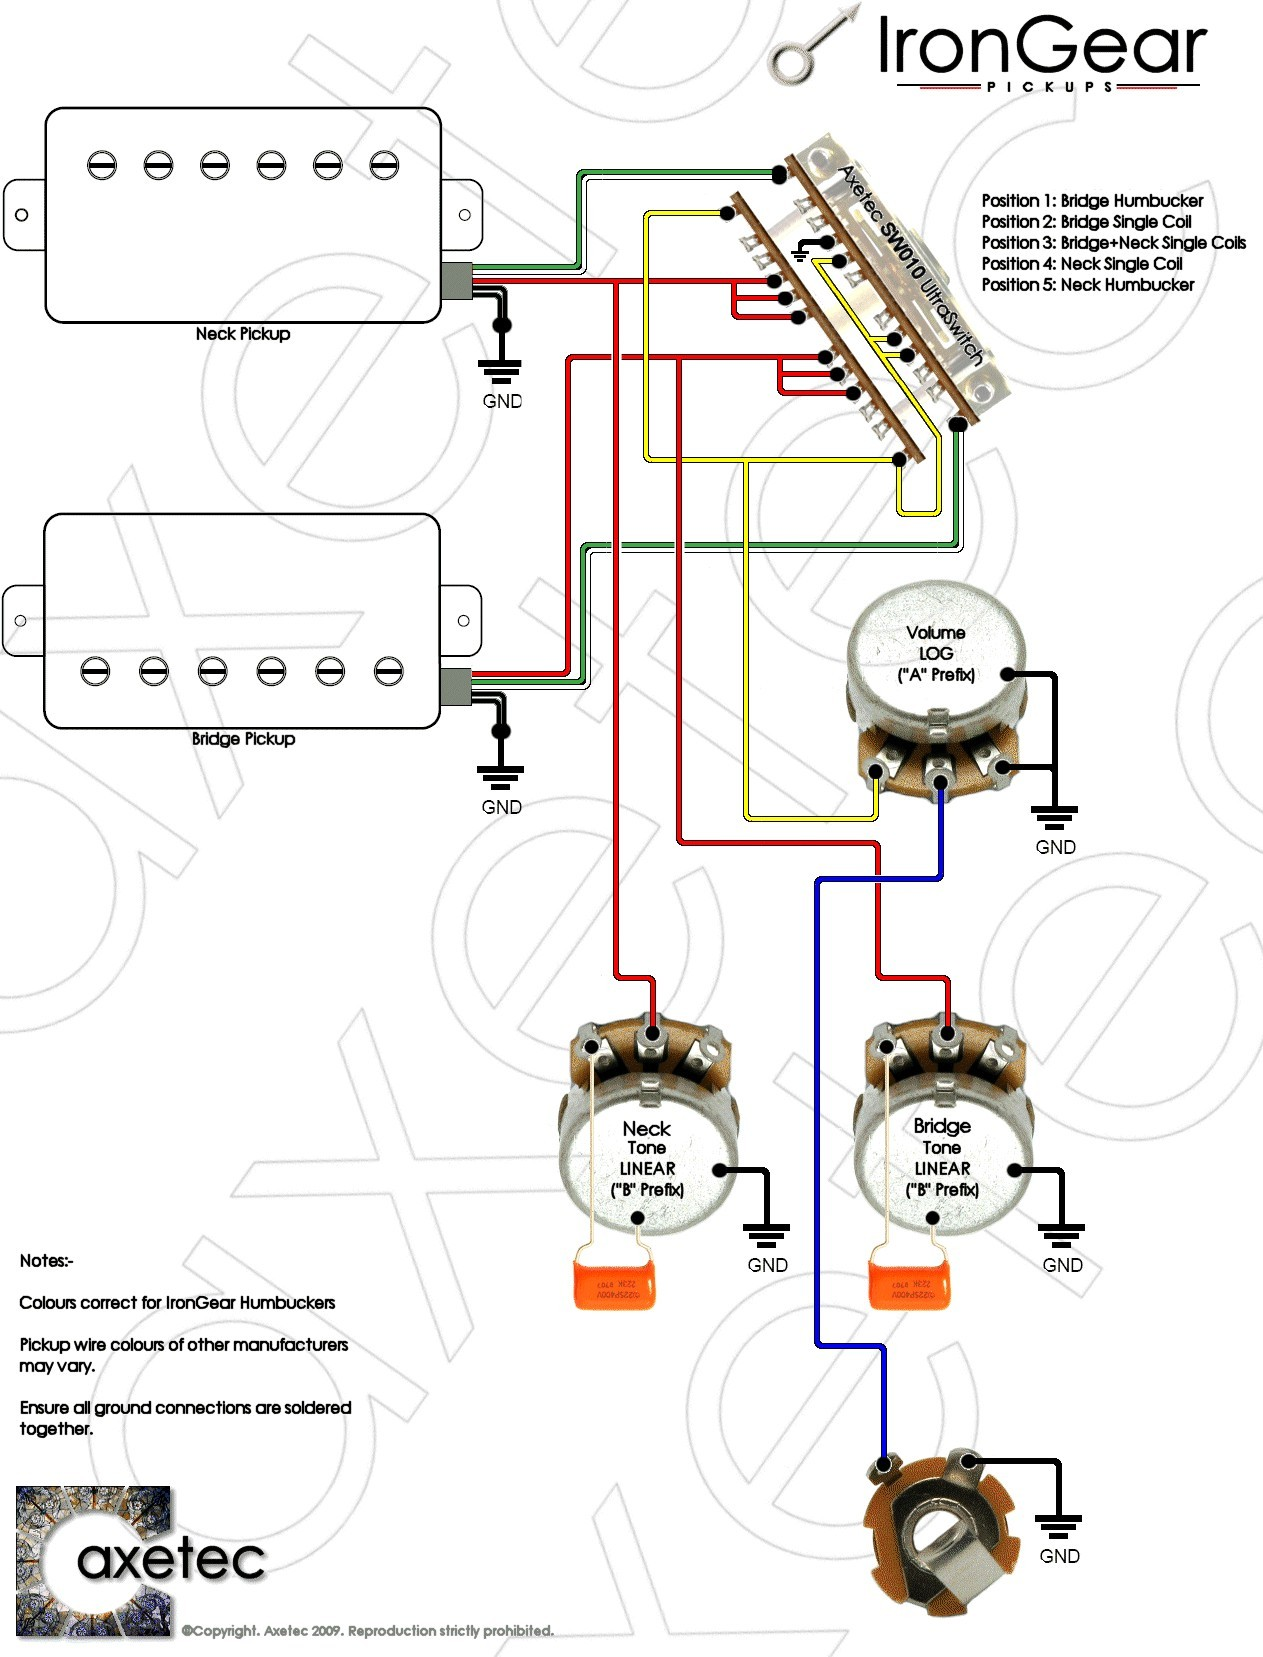 Guitar Wiring Diagrams 2 Pickups Humbucker Wiring Diagrams To Her 4-Wire  Humbucker Wiring 2wire Humbucker Wiring Diagram